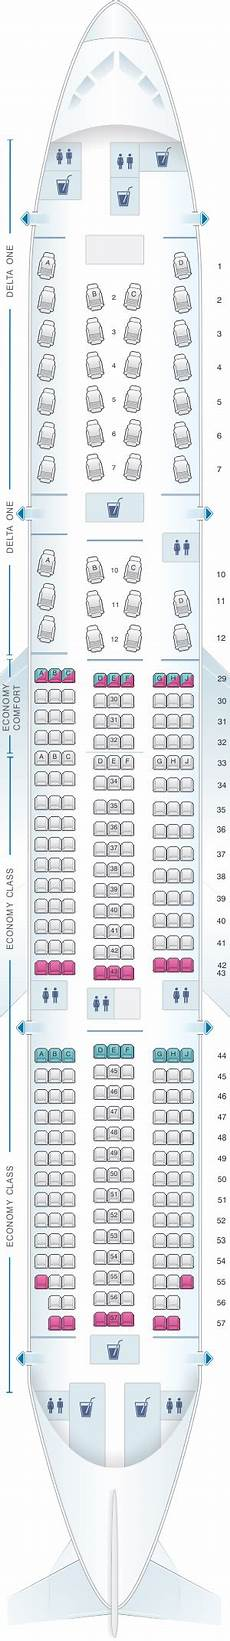 Delta Airlines Seating Chart Seat Map Delta Air Lines Boeing B777 200er Seatmaestro